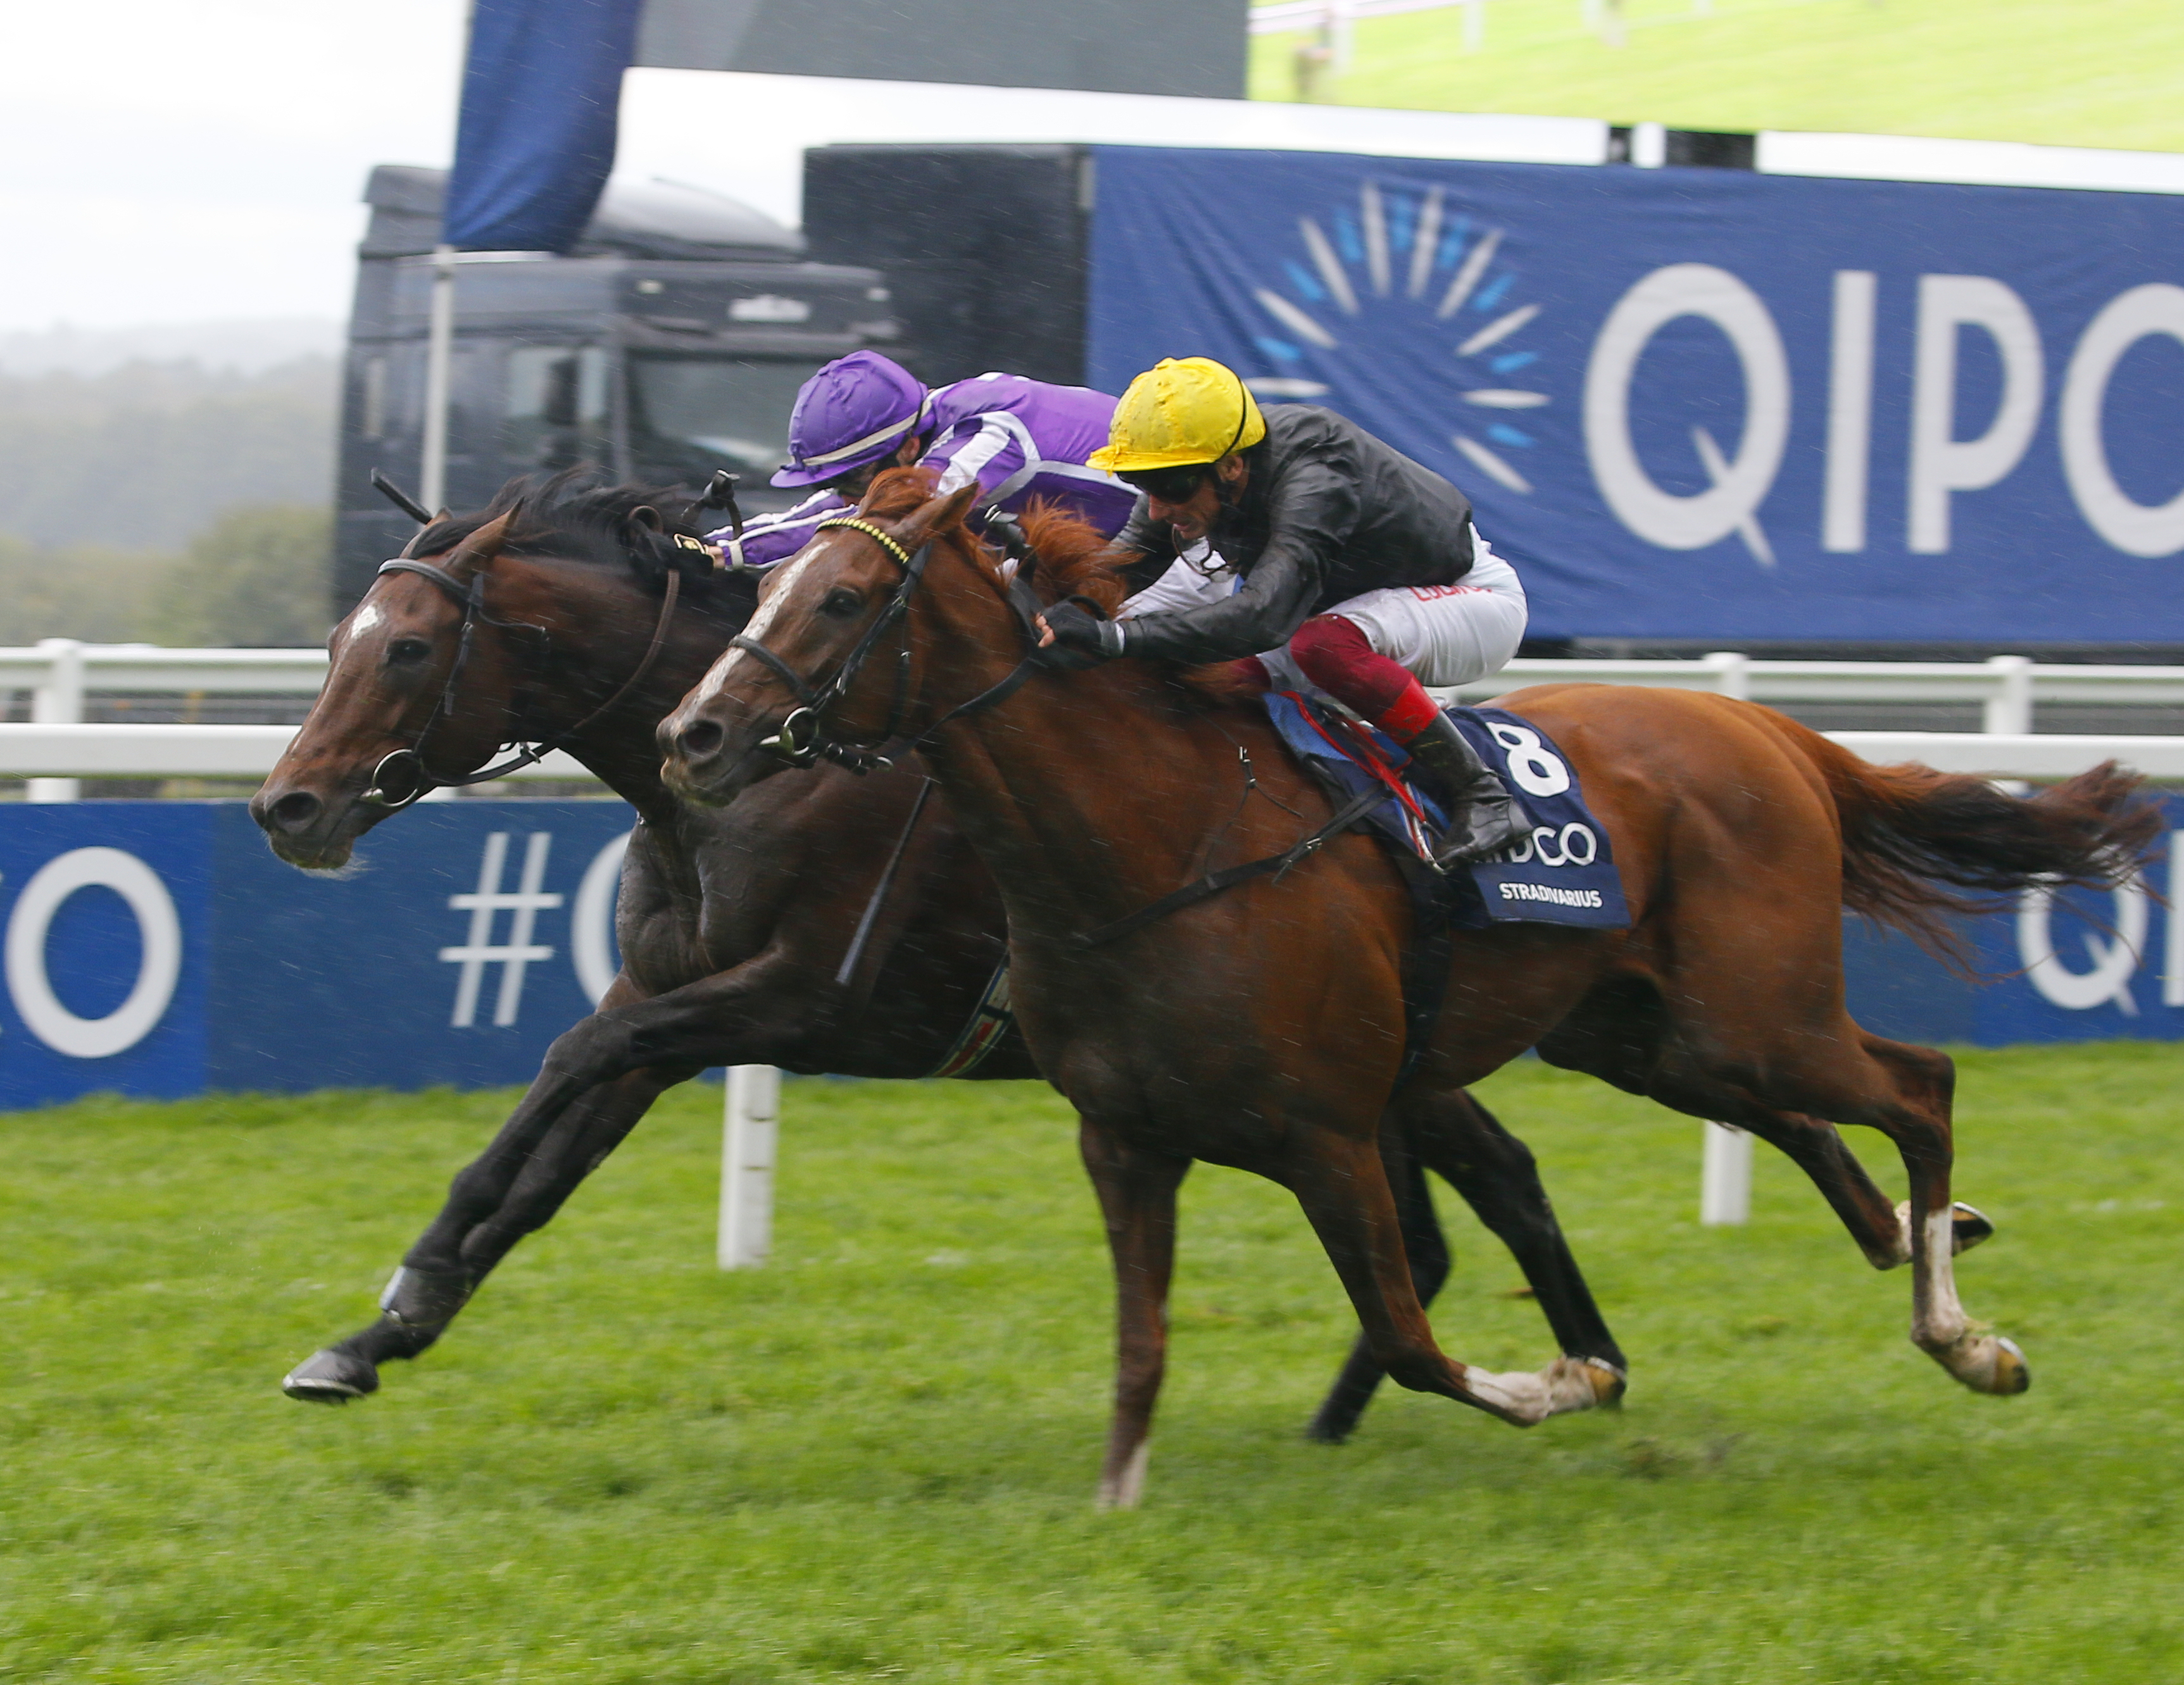 QIPCO BRITISH CHAMPIONS LONG DISTANCE CUP (Gr2) - Les stayers, ces héros !